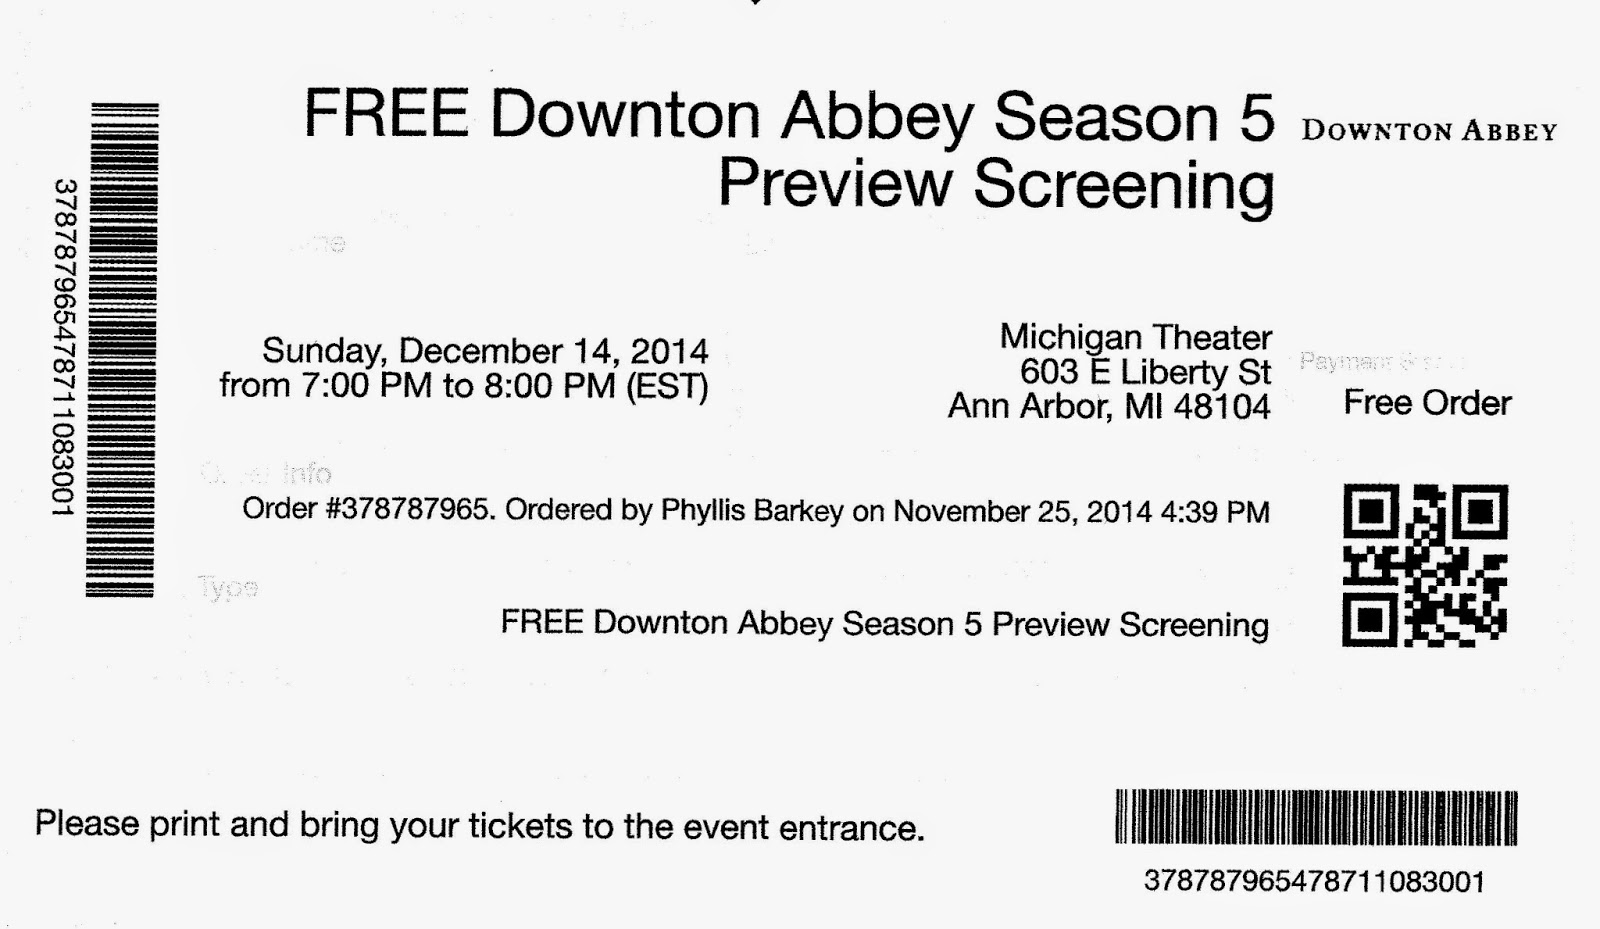 Relevant tea leaf downton abbey season v preview screening for Downton abbey tour tickets